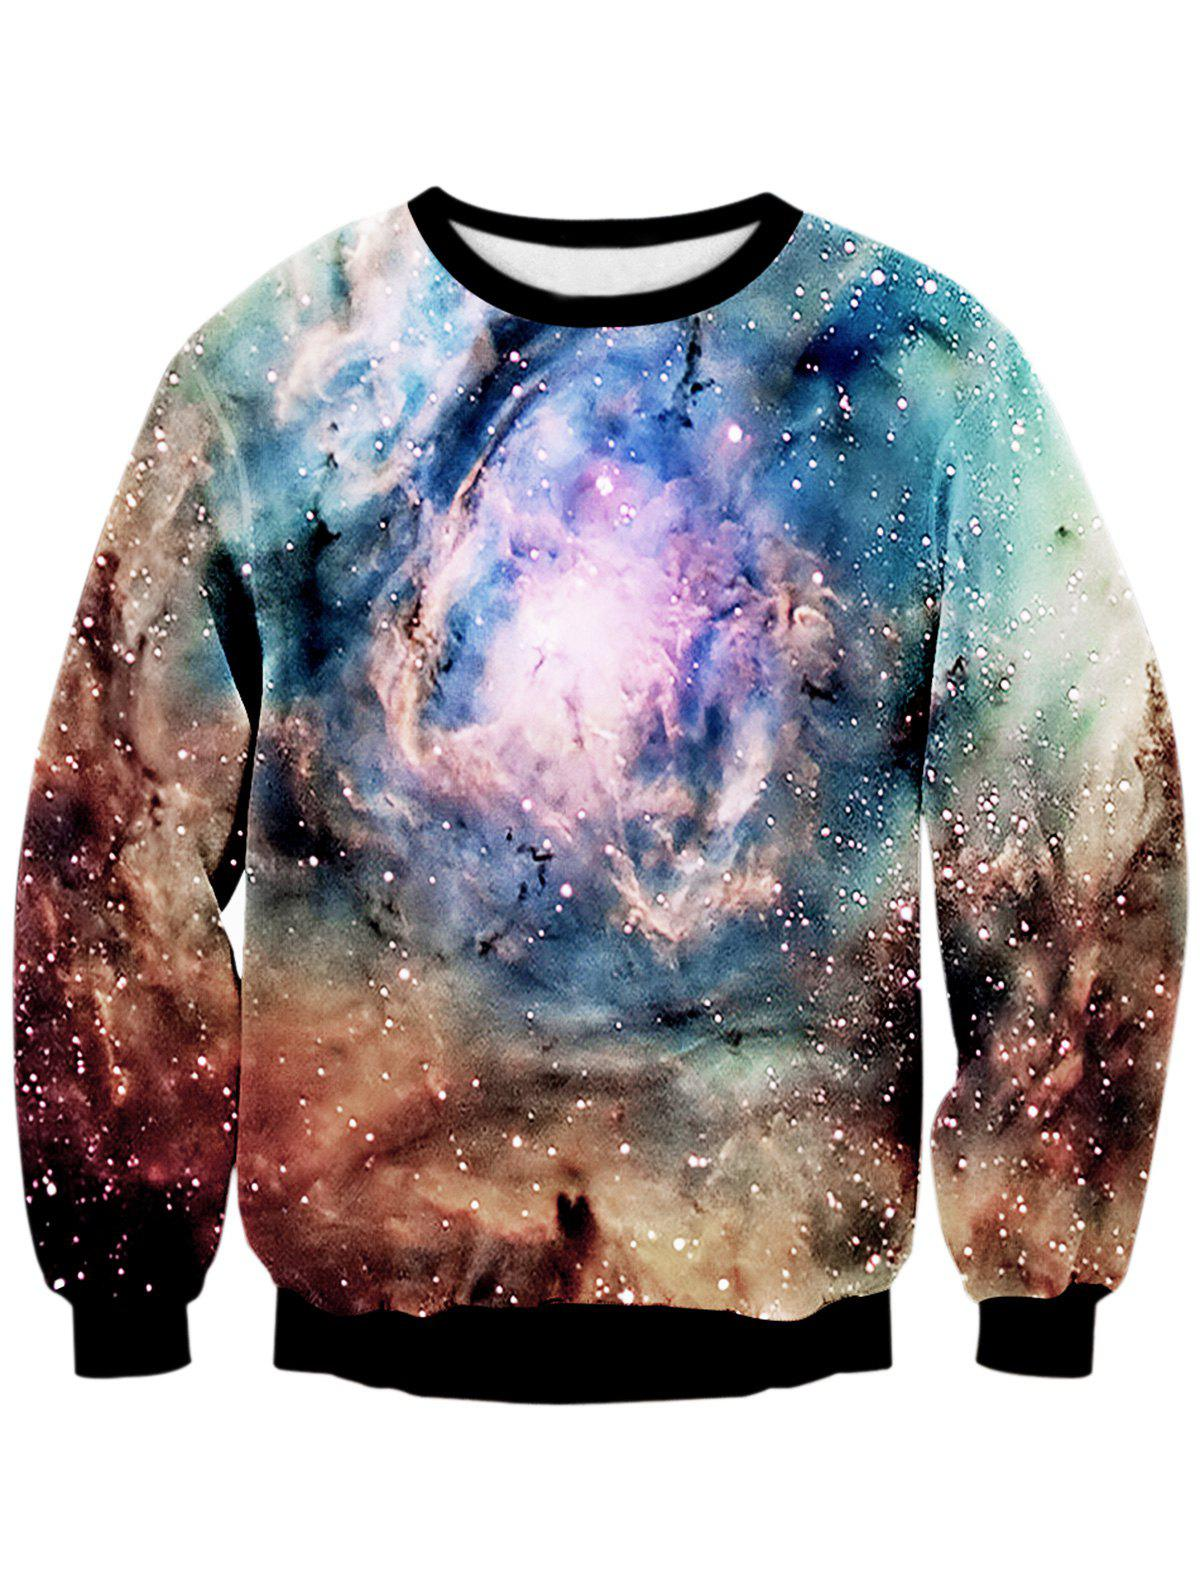 Sweat-shirt 3D Galaxie Digital Imprimé à Col Rond - multicolore XL